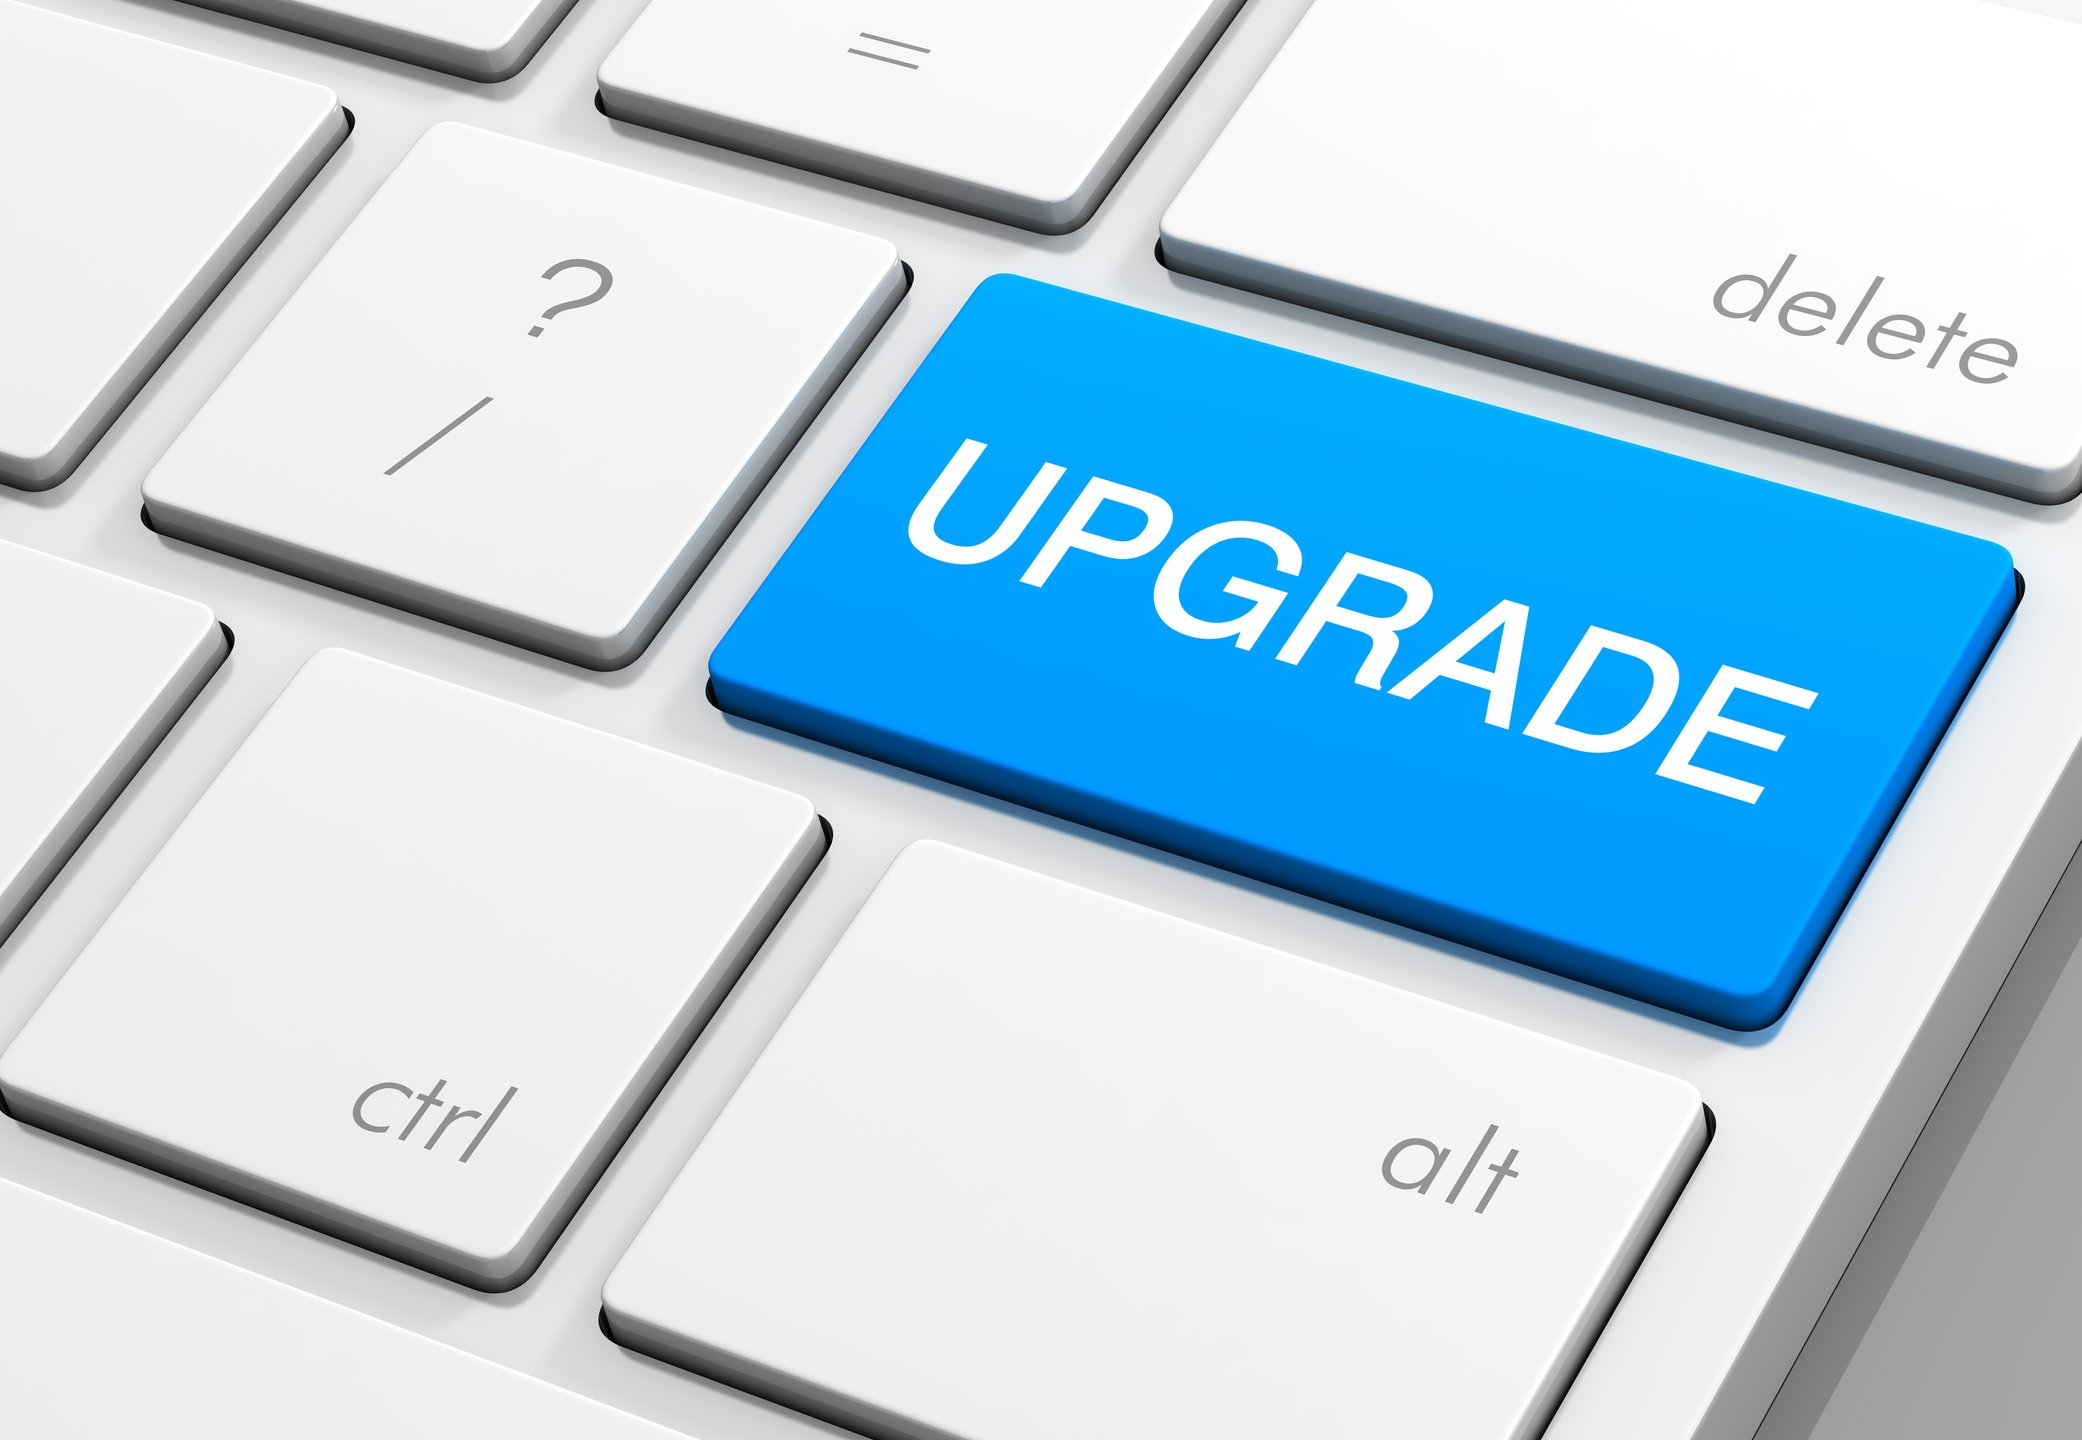 Product Update: End of Support for Legacy Versions of Cognos and Planning Analytics